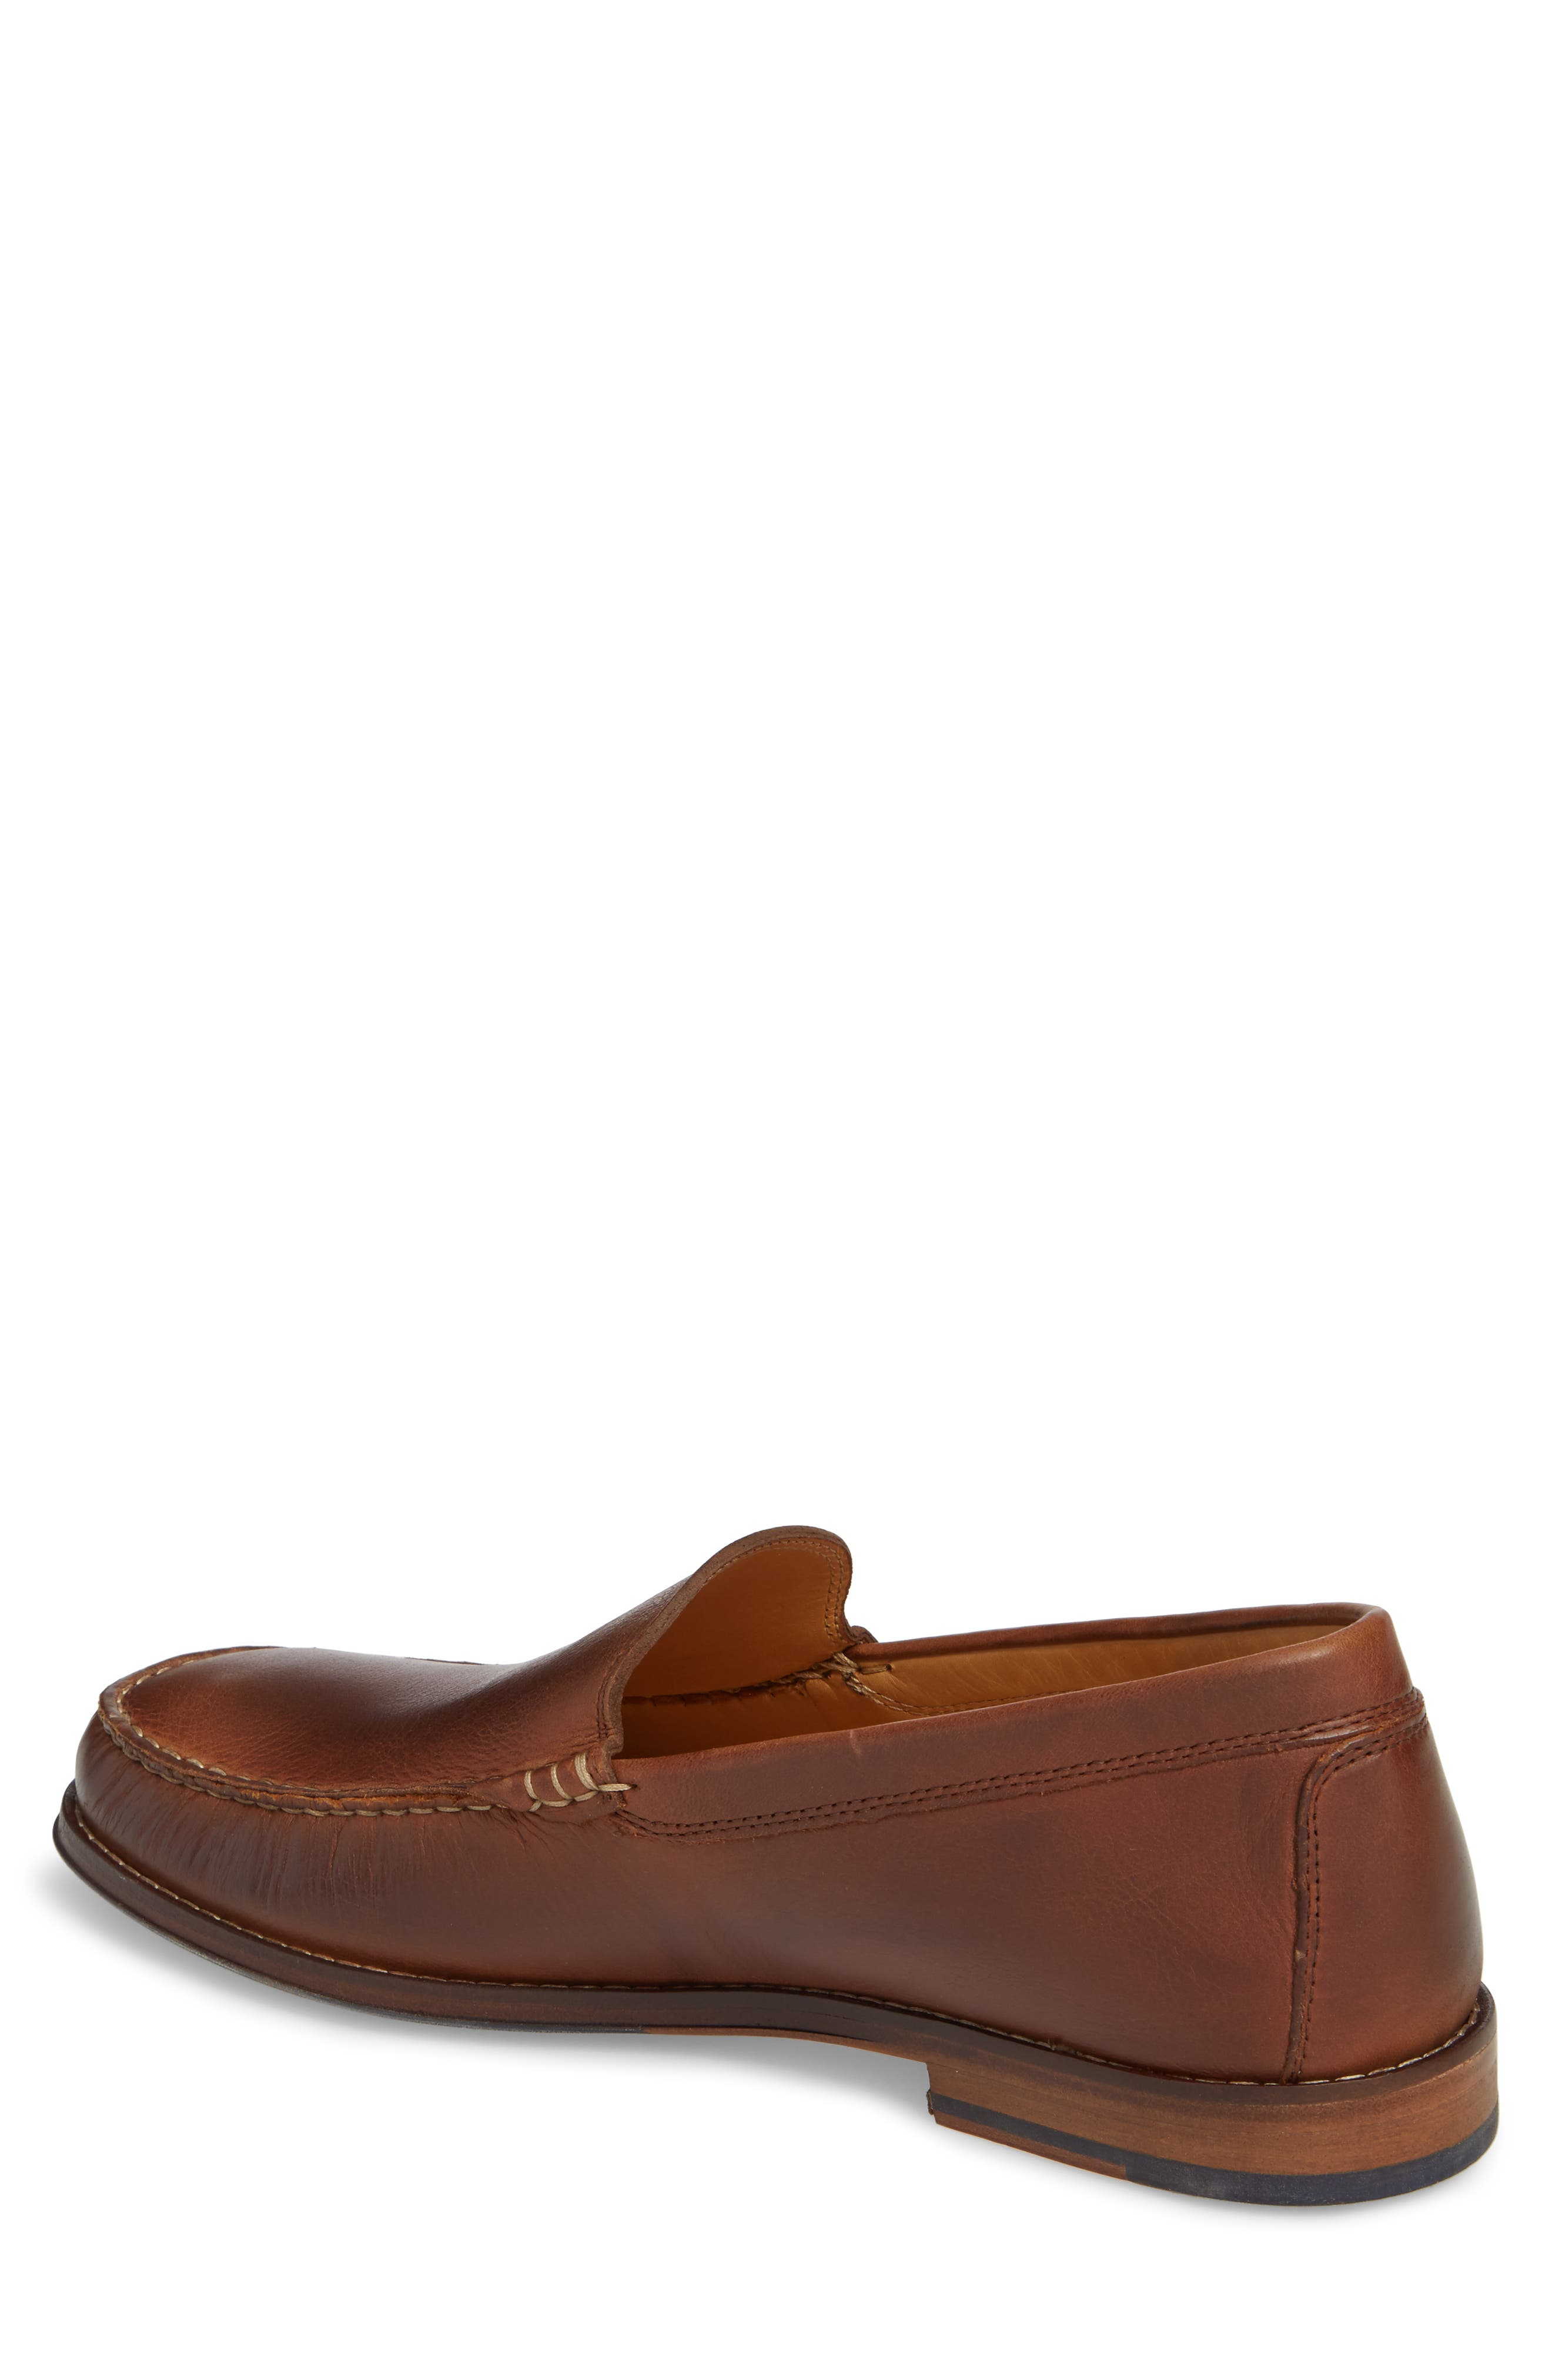 Caldwells Loafer,                             Alternate thumbnail 2, color,                             LIGHT BROWN DISTRESSED LEATHER